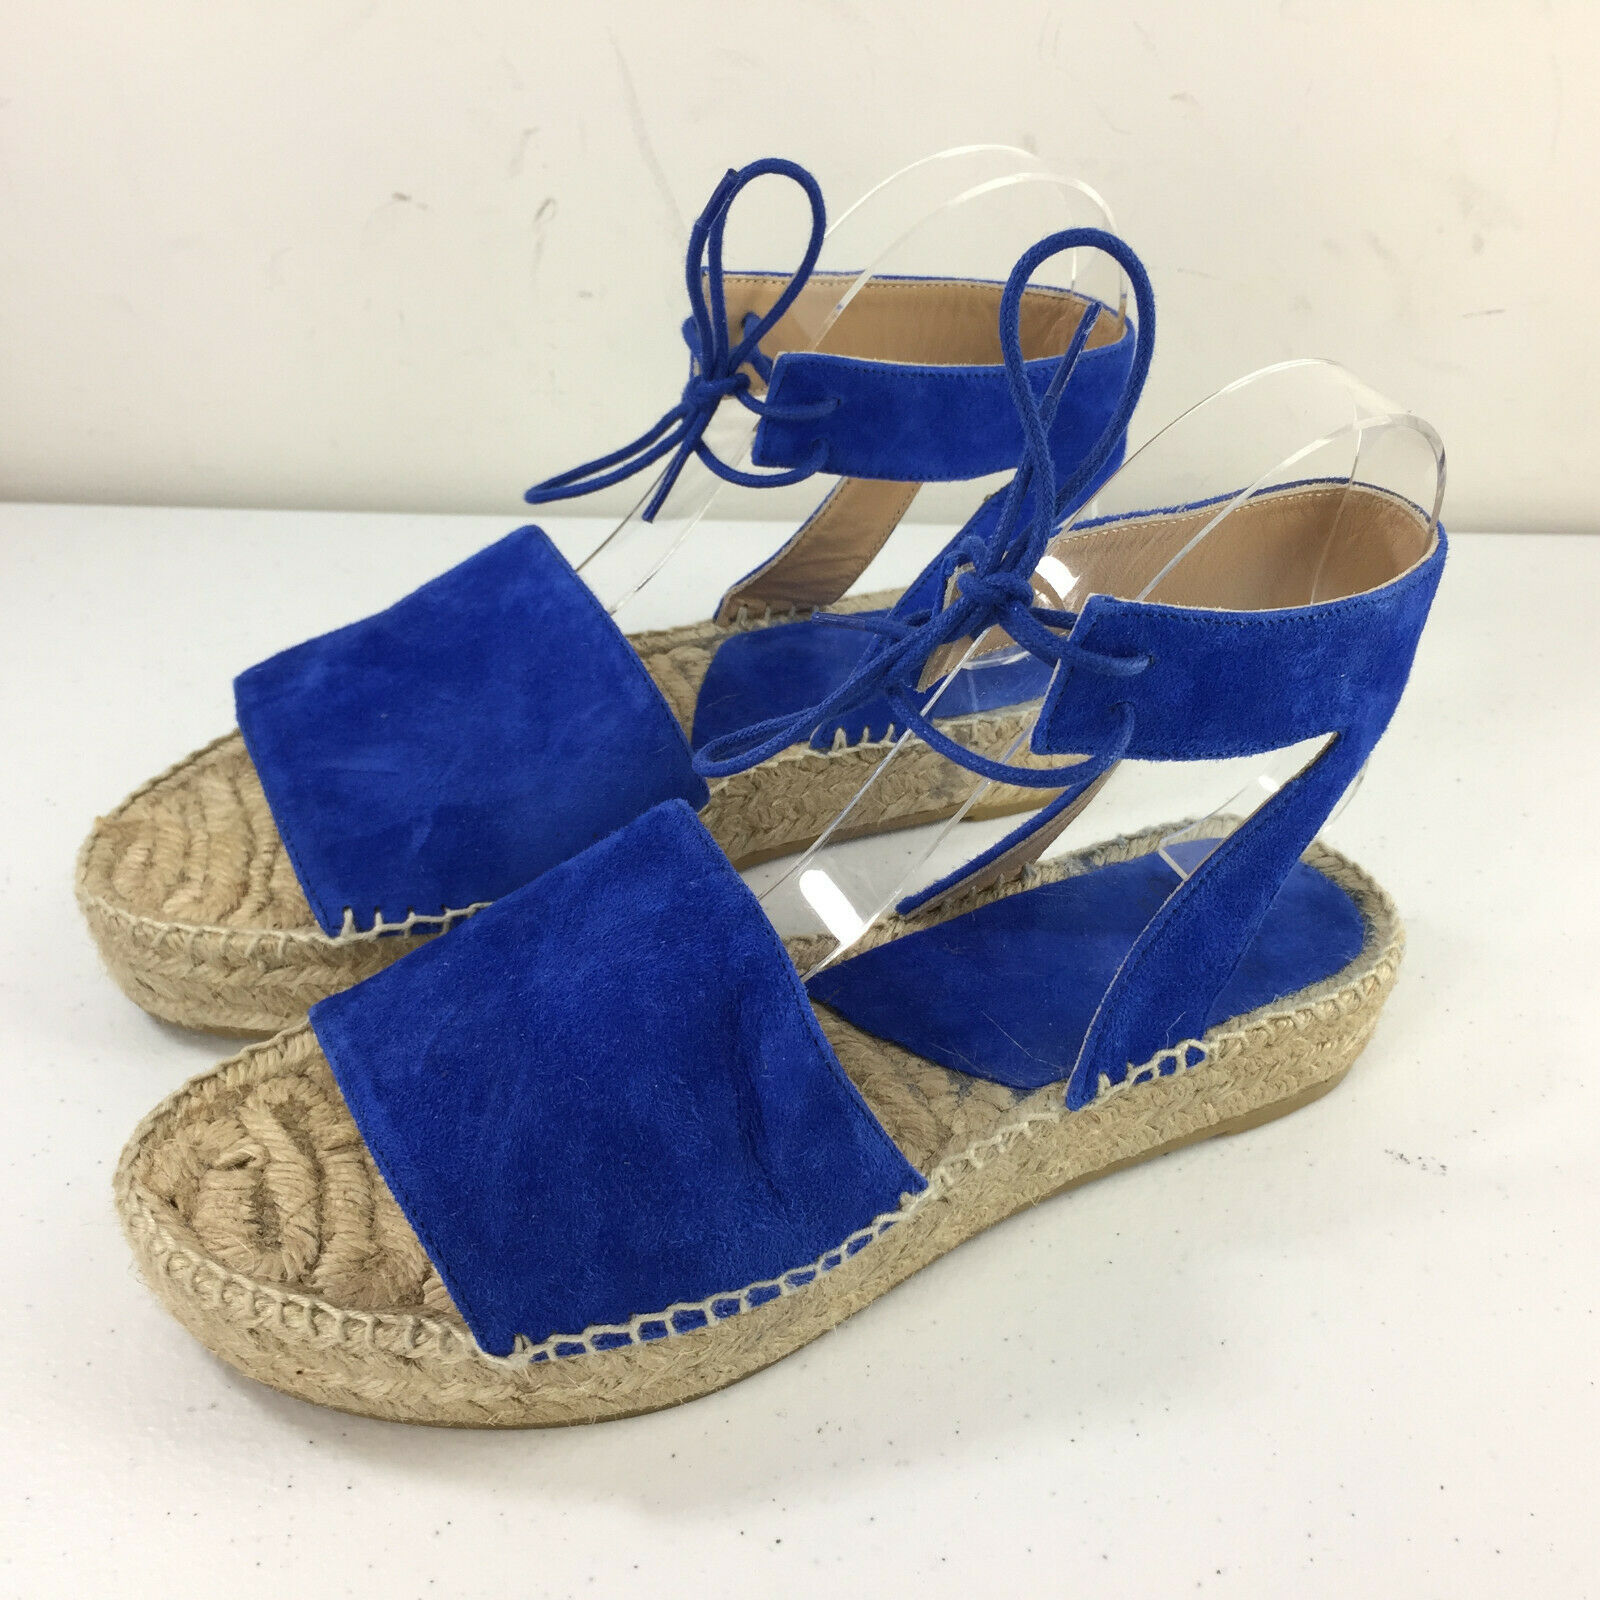 Andre Assous Vibrant bluee Espadrille Sandals Anthropologie 38 7.5 8 Ankle strap